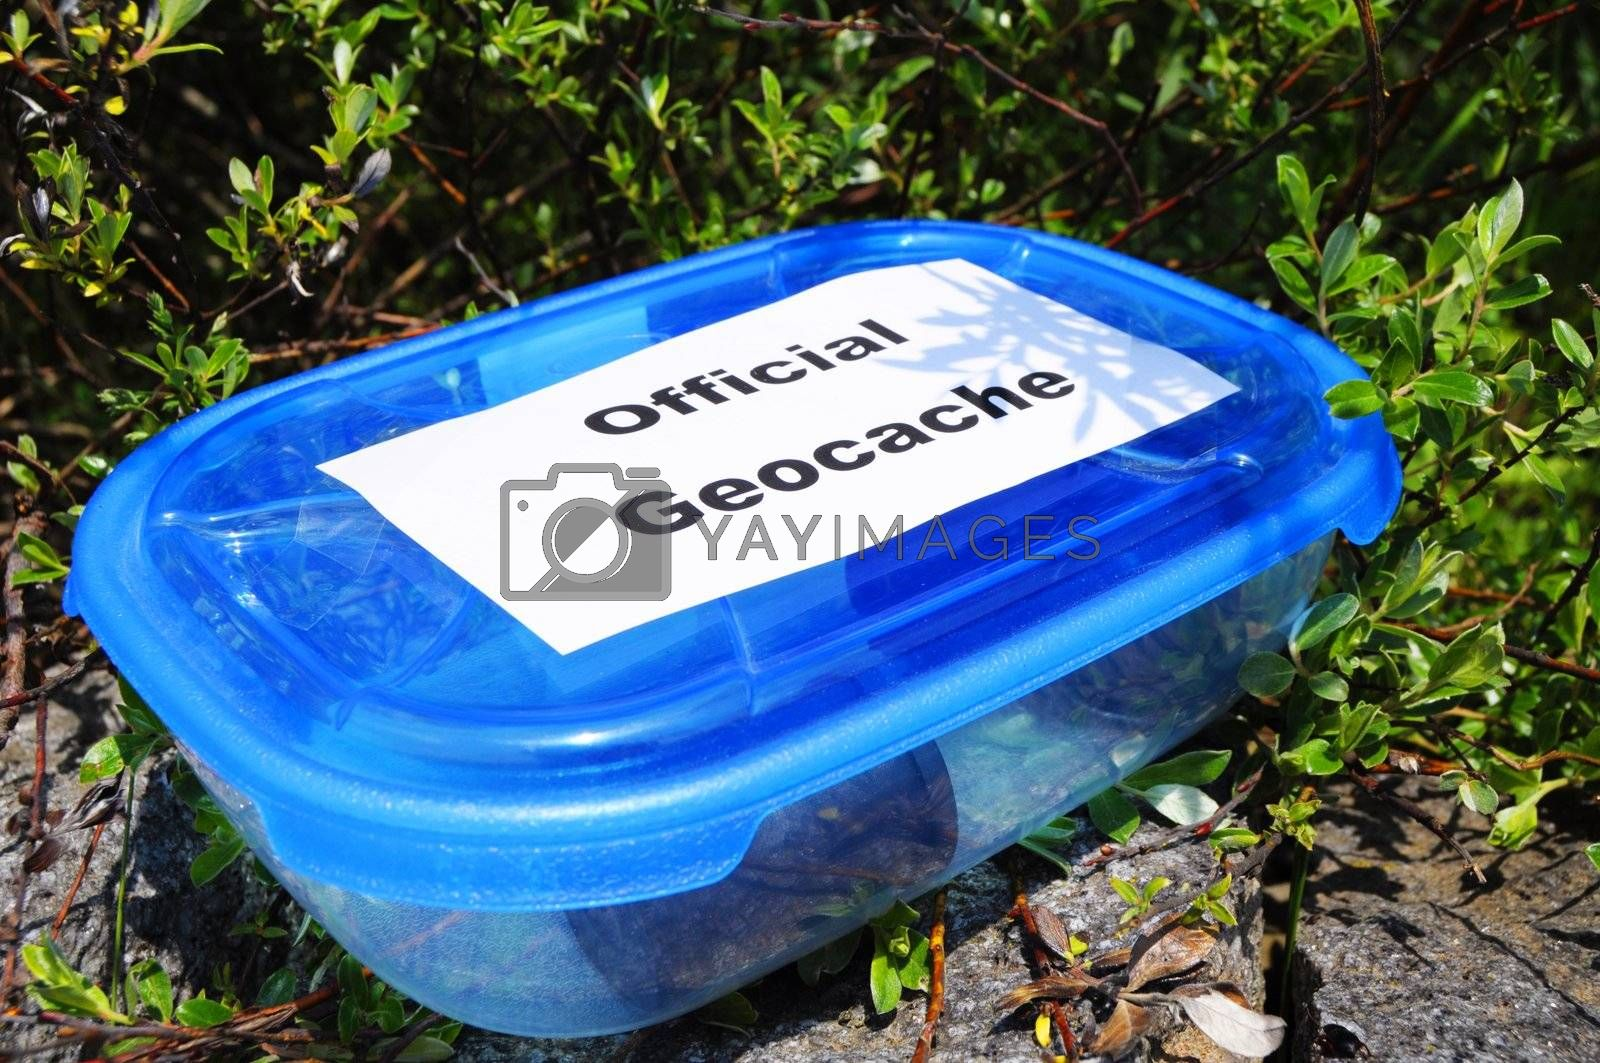 geocaching concept with blue geocache box showing outdoor sports concept